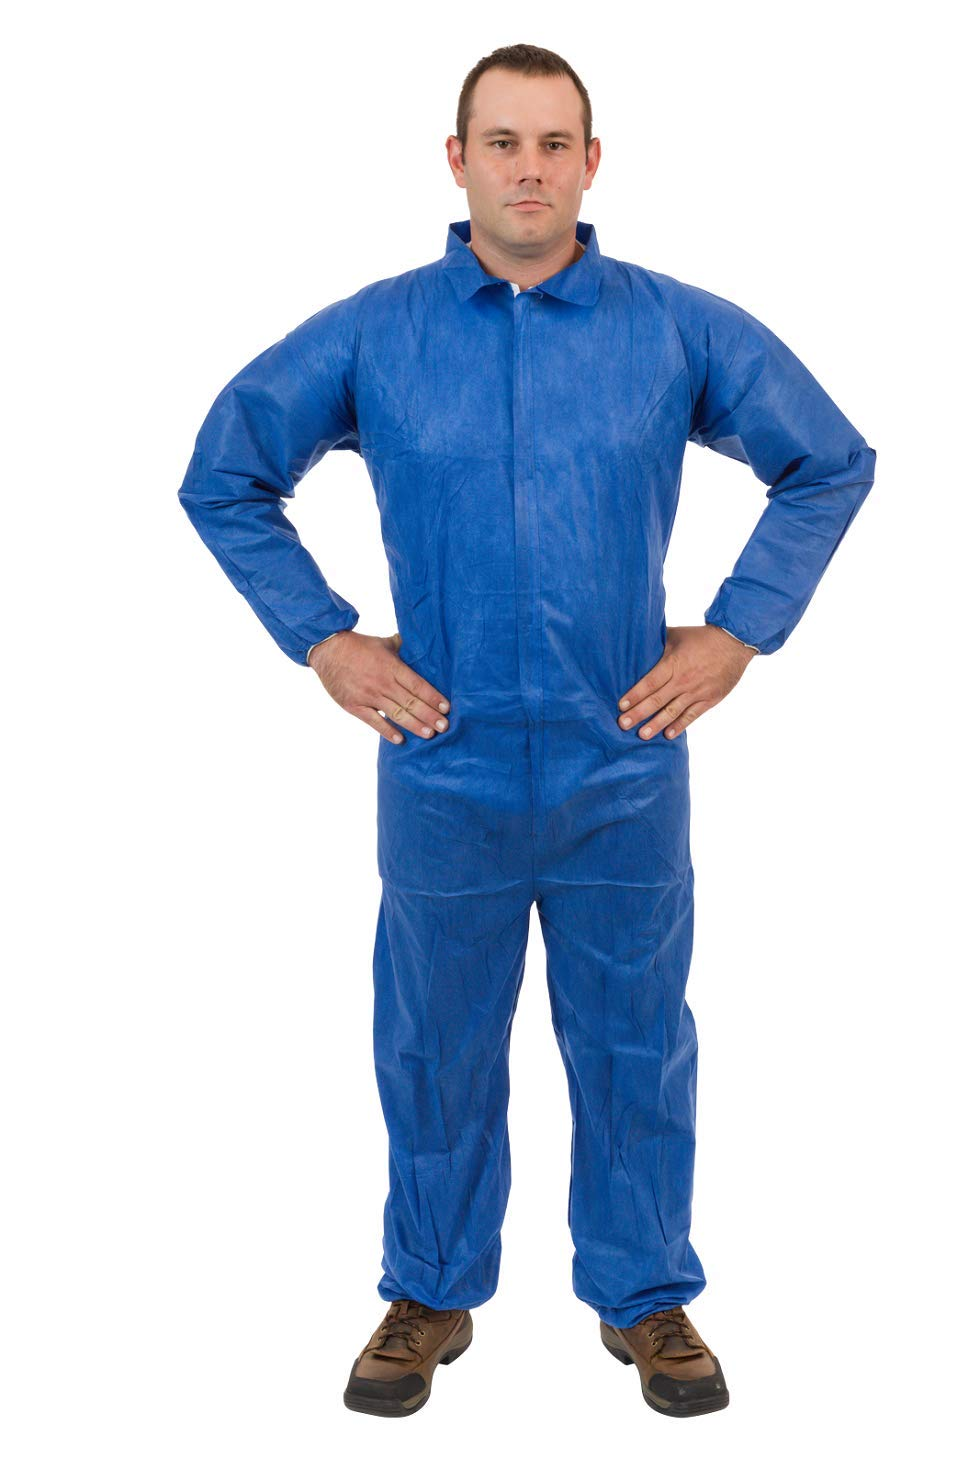 International Enviorugard – Standard SMS 3 Layer General Protective Coverall for General Cleanup (Blue) Elastic Wrist & Ankle, 4XL, (25 per case) by International Enviroguard (Image #1)